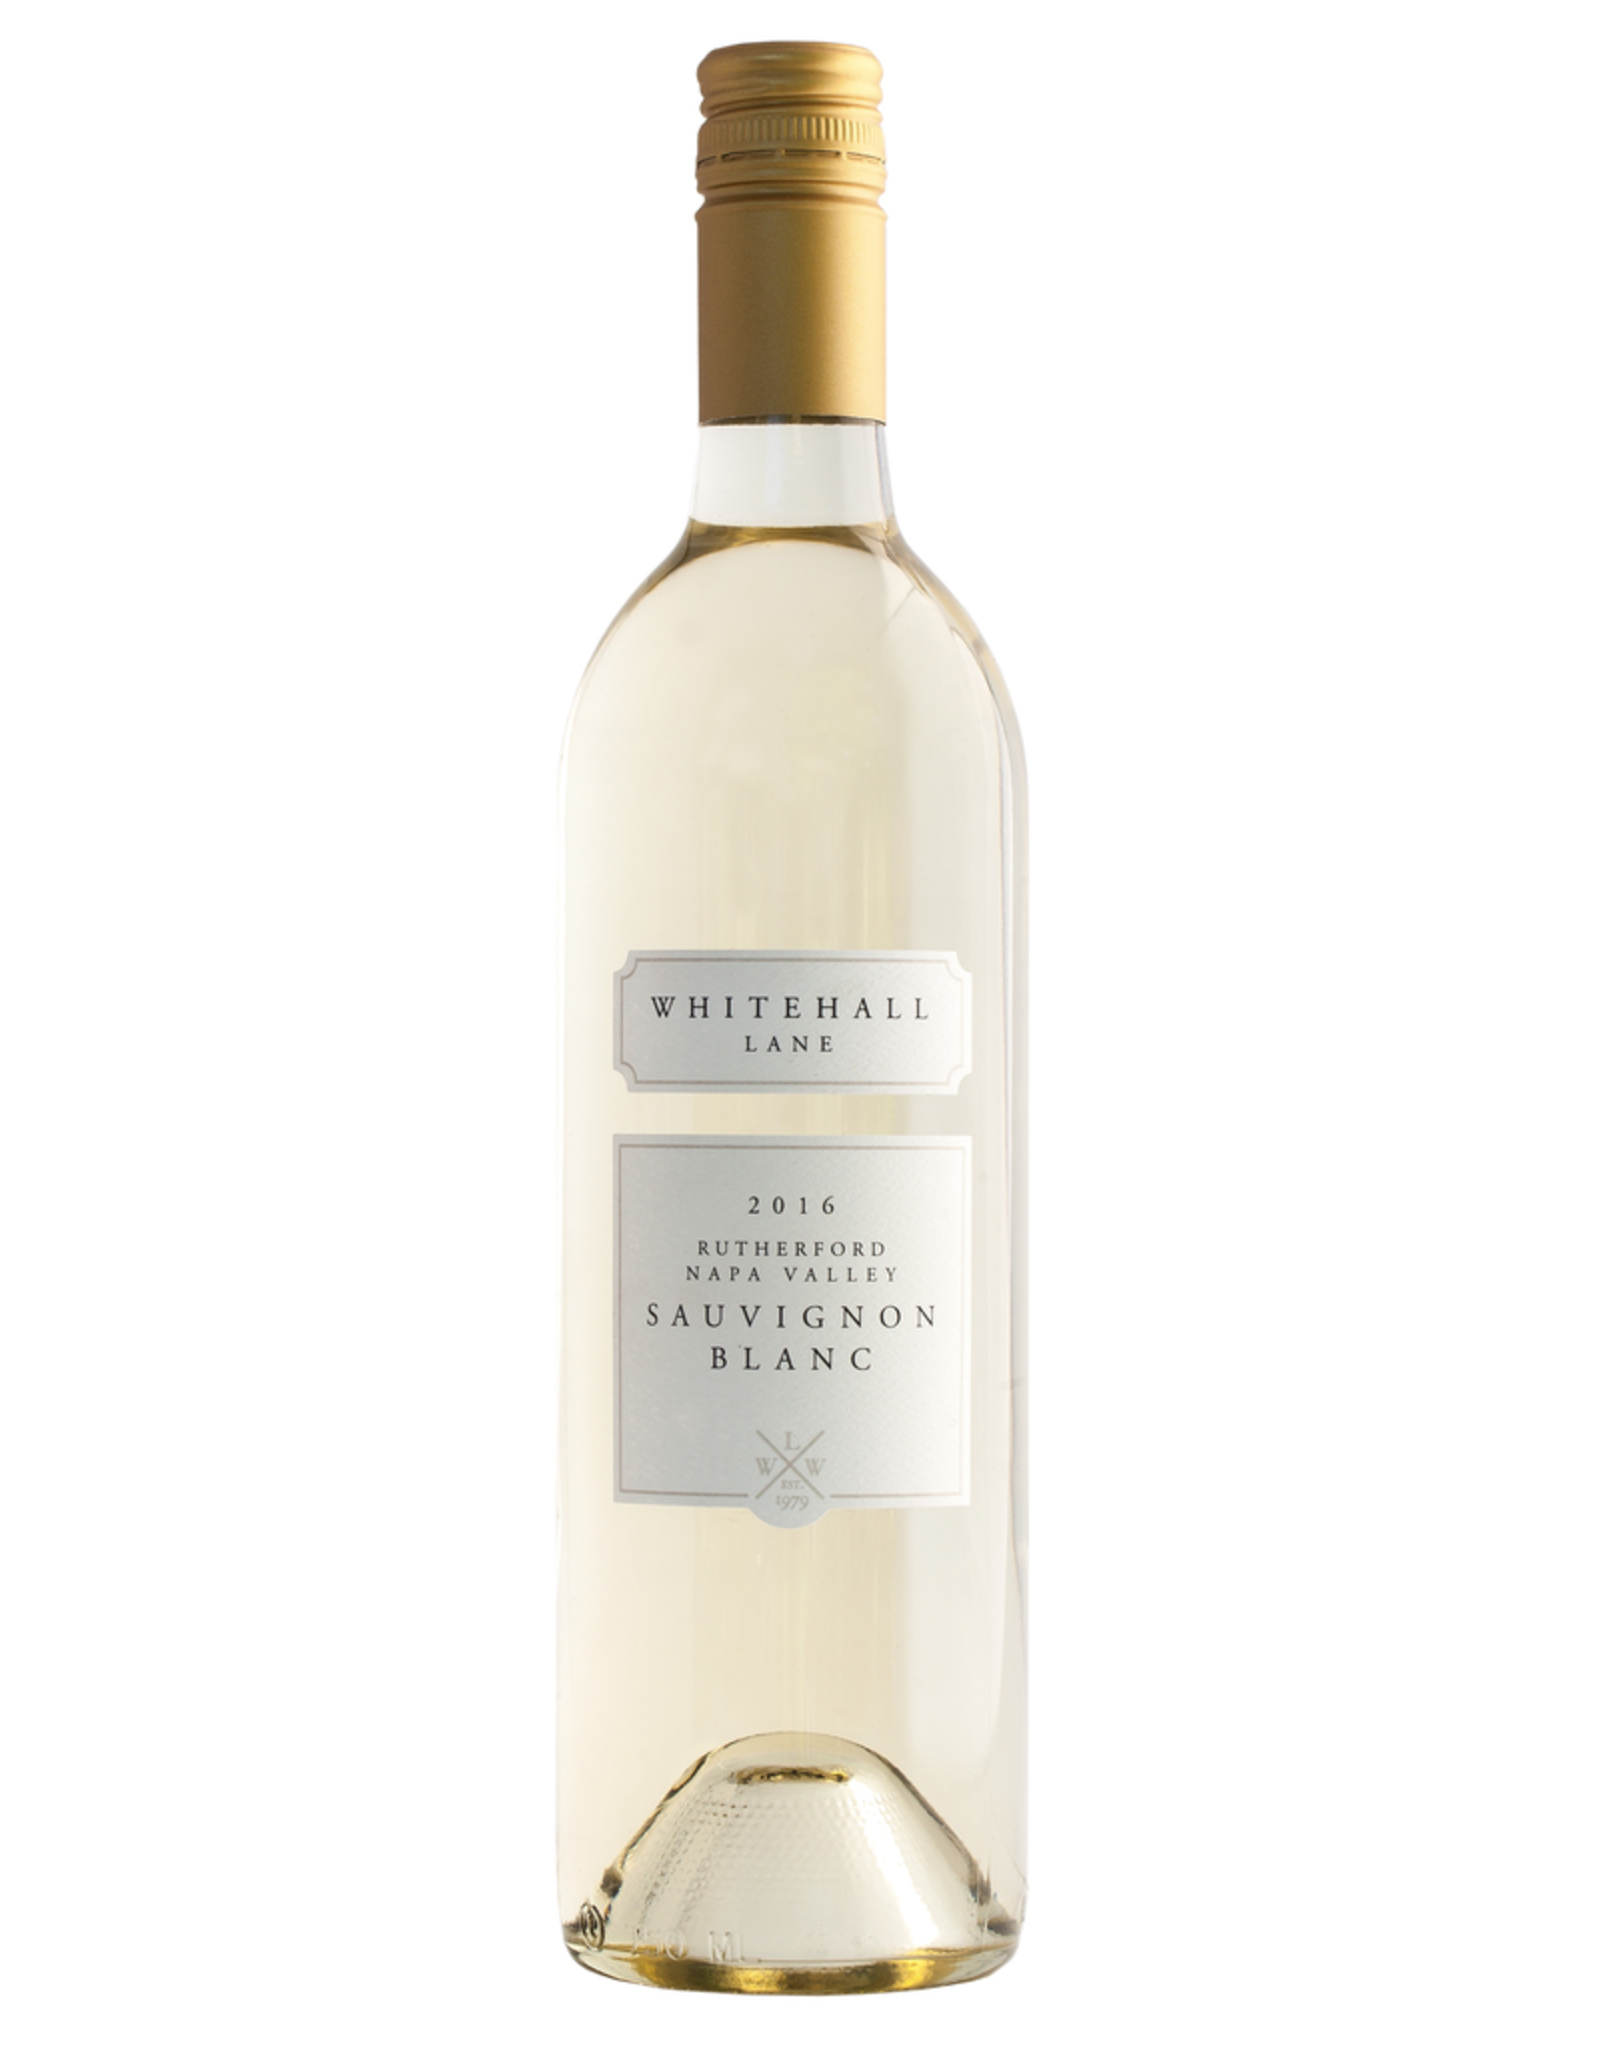 White Wine 2016, Whitehall Lane, Sauvignon Blanc, Rutherford AVA, Napa Valley, California, 13.8% Alc, CTnr, TW91